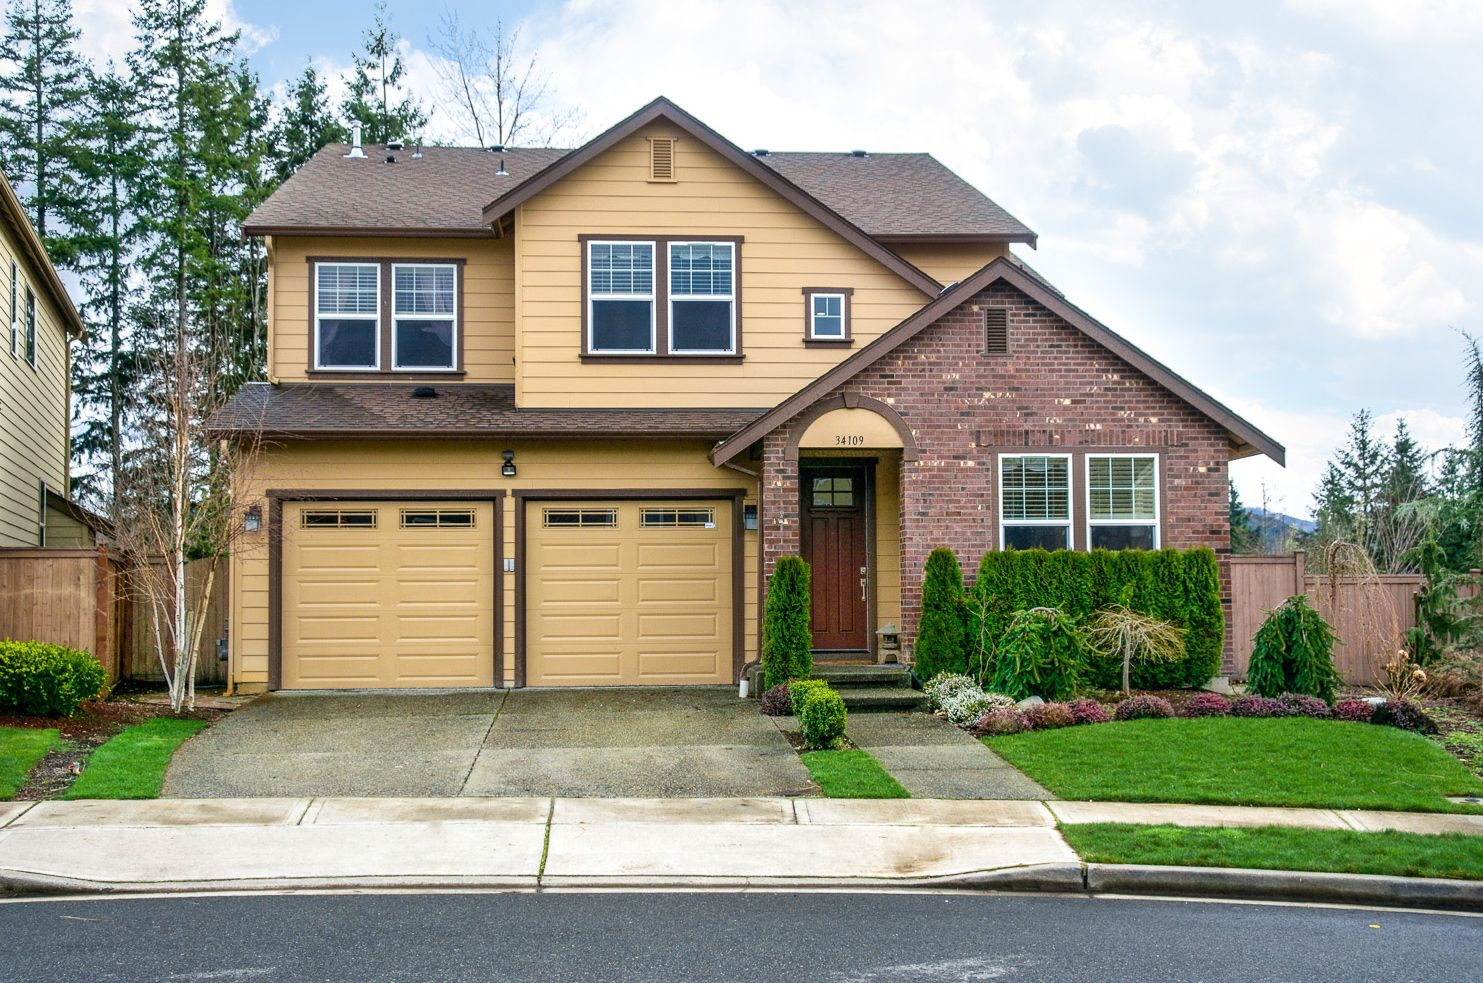 Indulge yourself in this fabulous eagle pointe home with